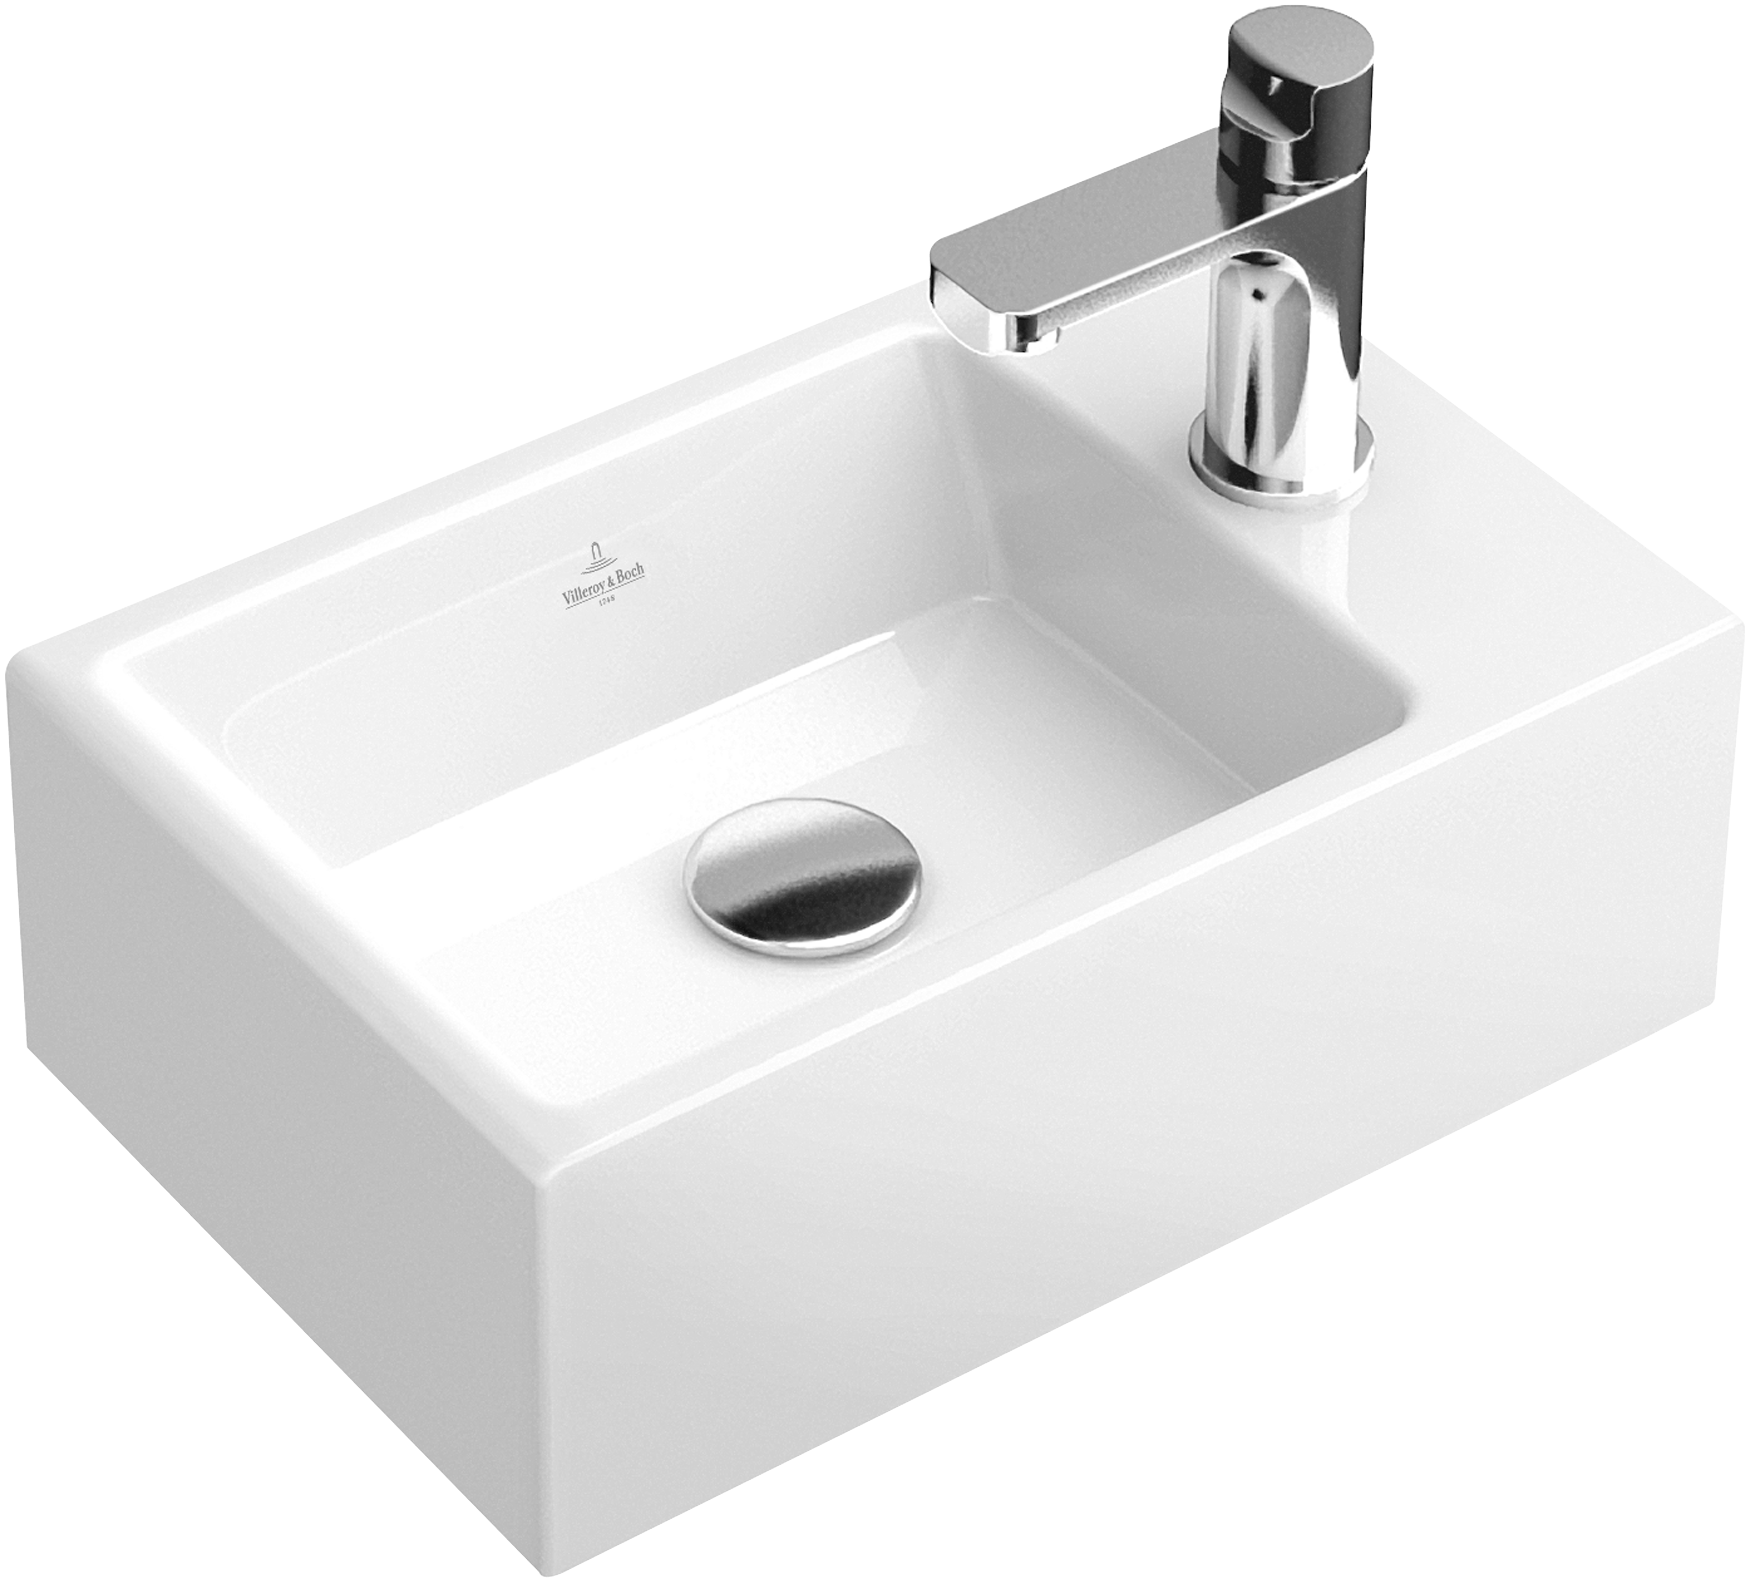 Memento Lave-mains Angulaire 53334G - Villeroy & Boch